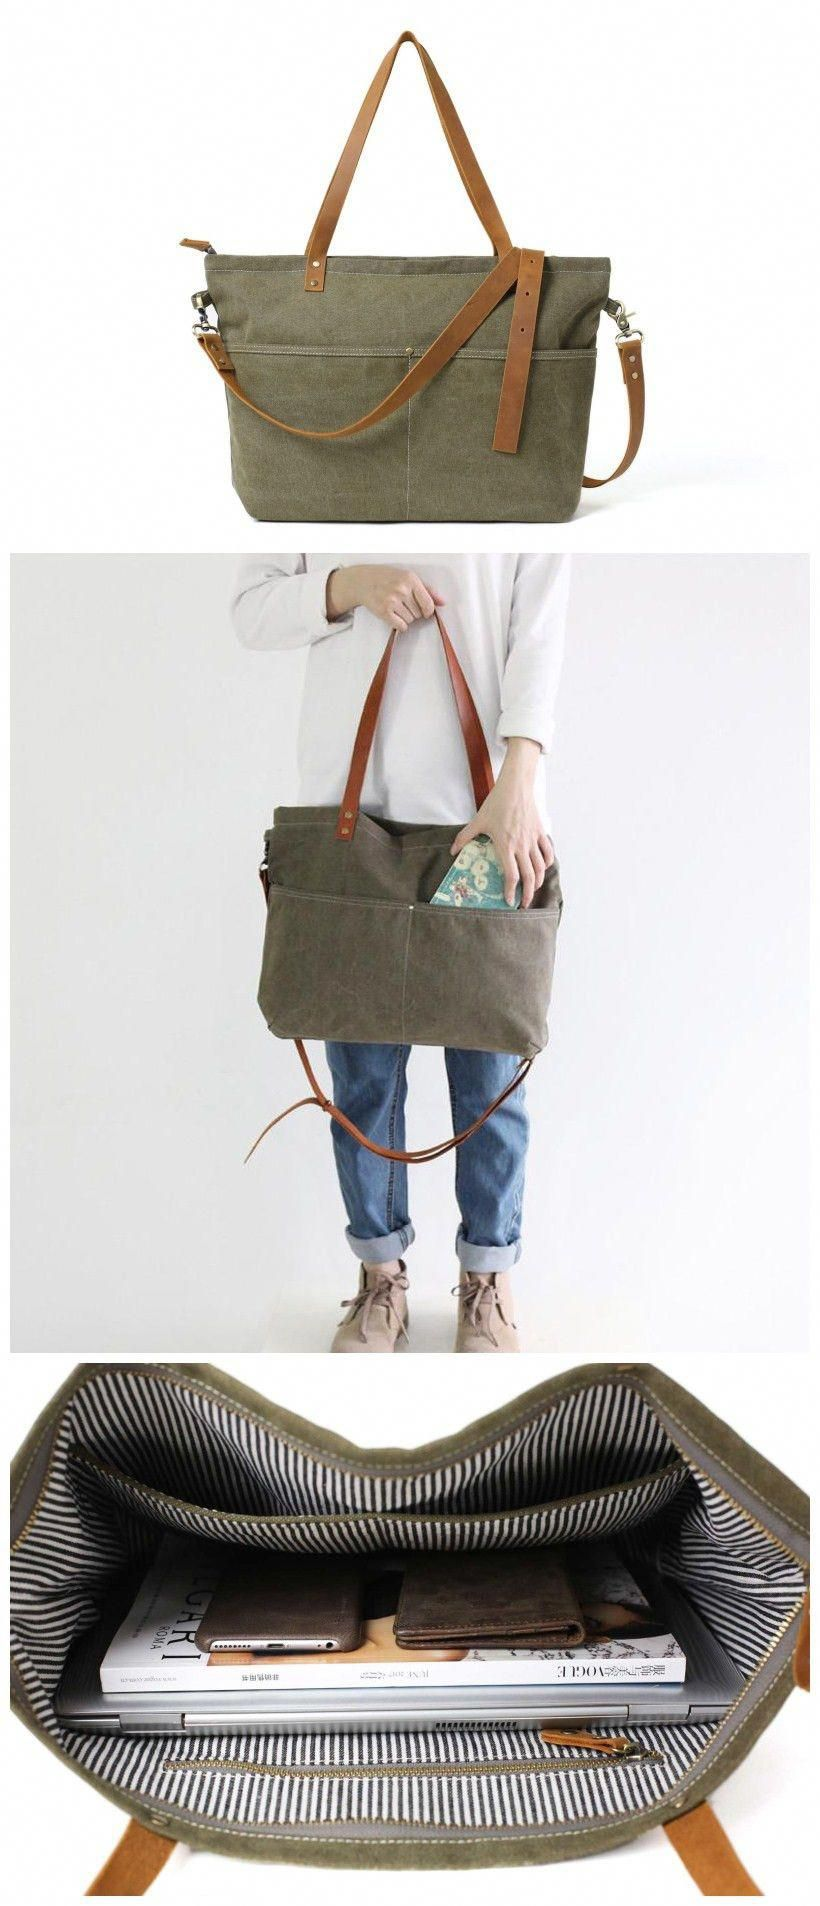 Diaper Bag Waxed Canvas with Leather Women Tote Bag Shoulder Bag Handbag   totesleatherbags 4c6b67f2b23dc